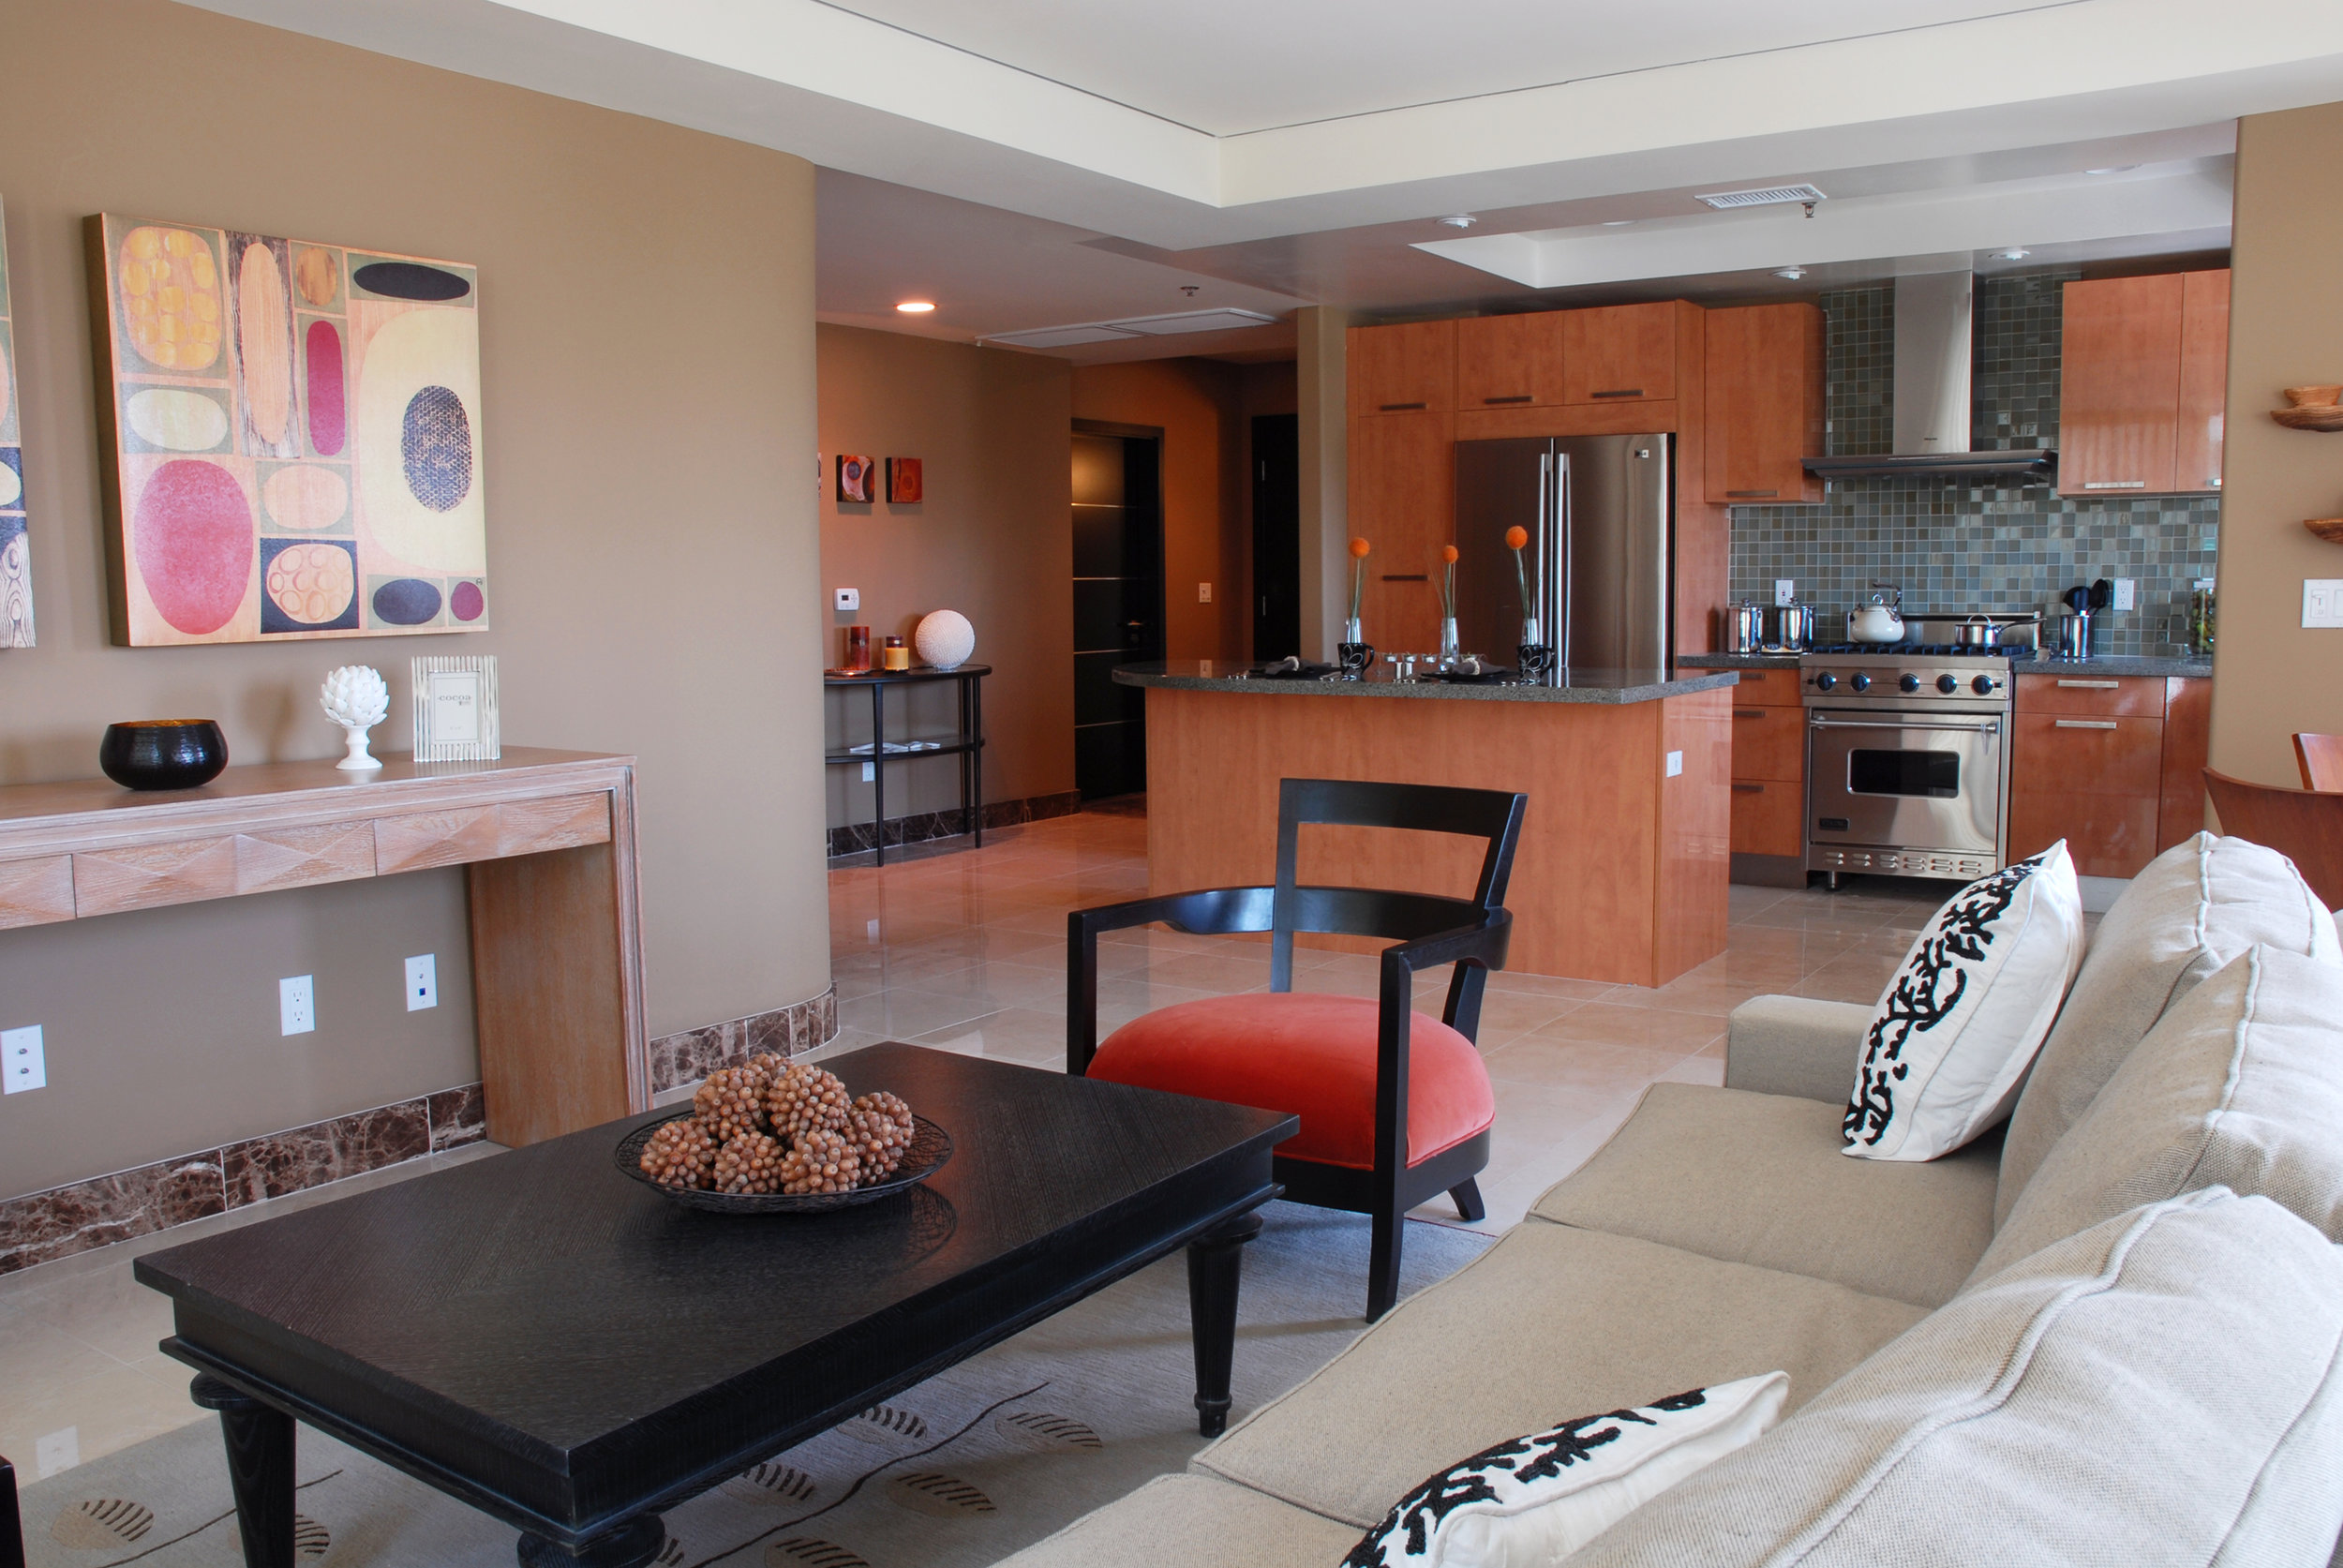 01_Room501_livingRoom_kitchen.jpg